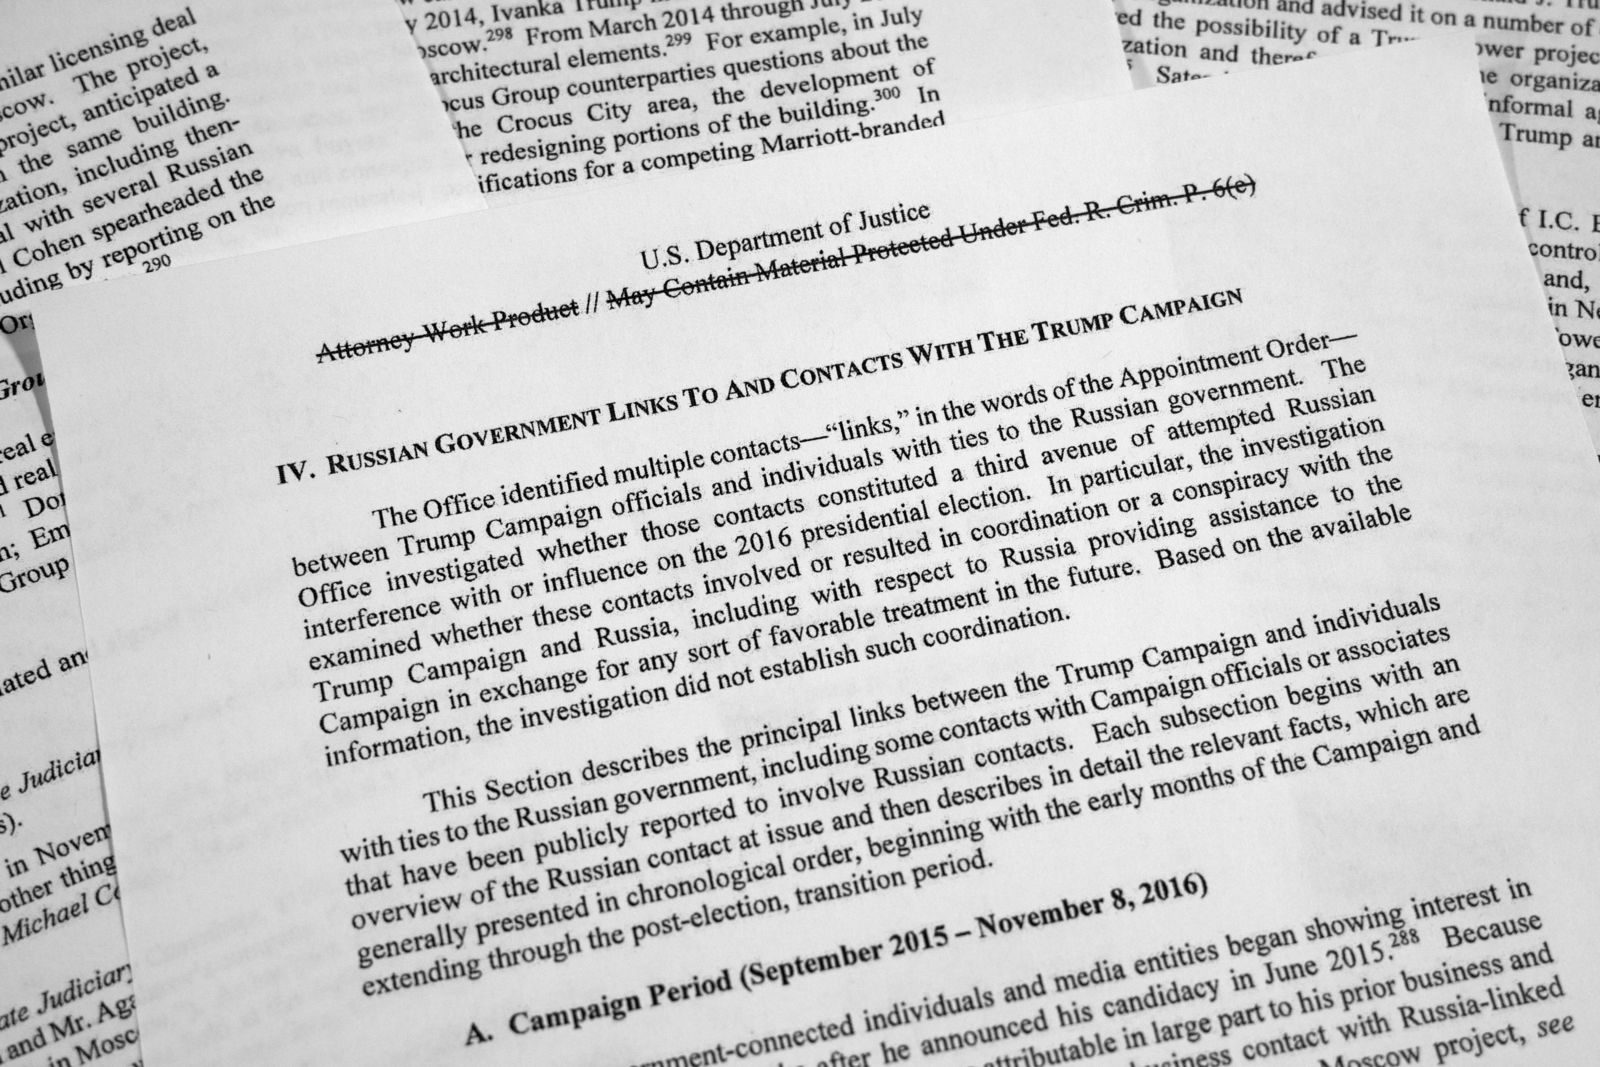 Special counsel Robert Mueller's redacted report on Russian interference in the 2016 presidential election as released on Thursday, April 18, 2019, is photographed in Washington. The section discusses Russian government links and contacts with the Trump campaign. (AP Photo/Jon Elswick)